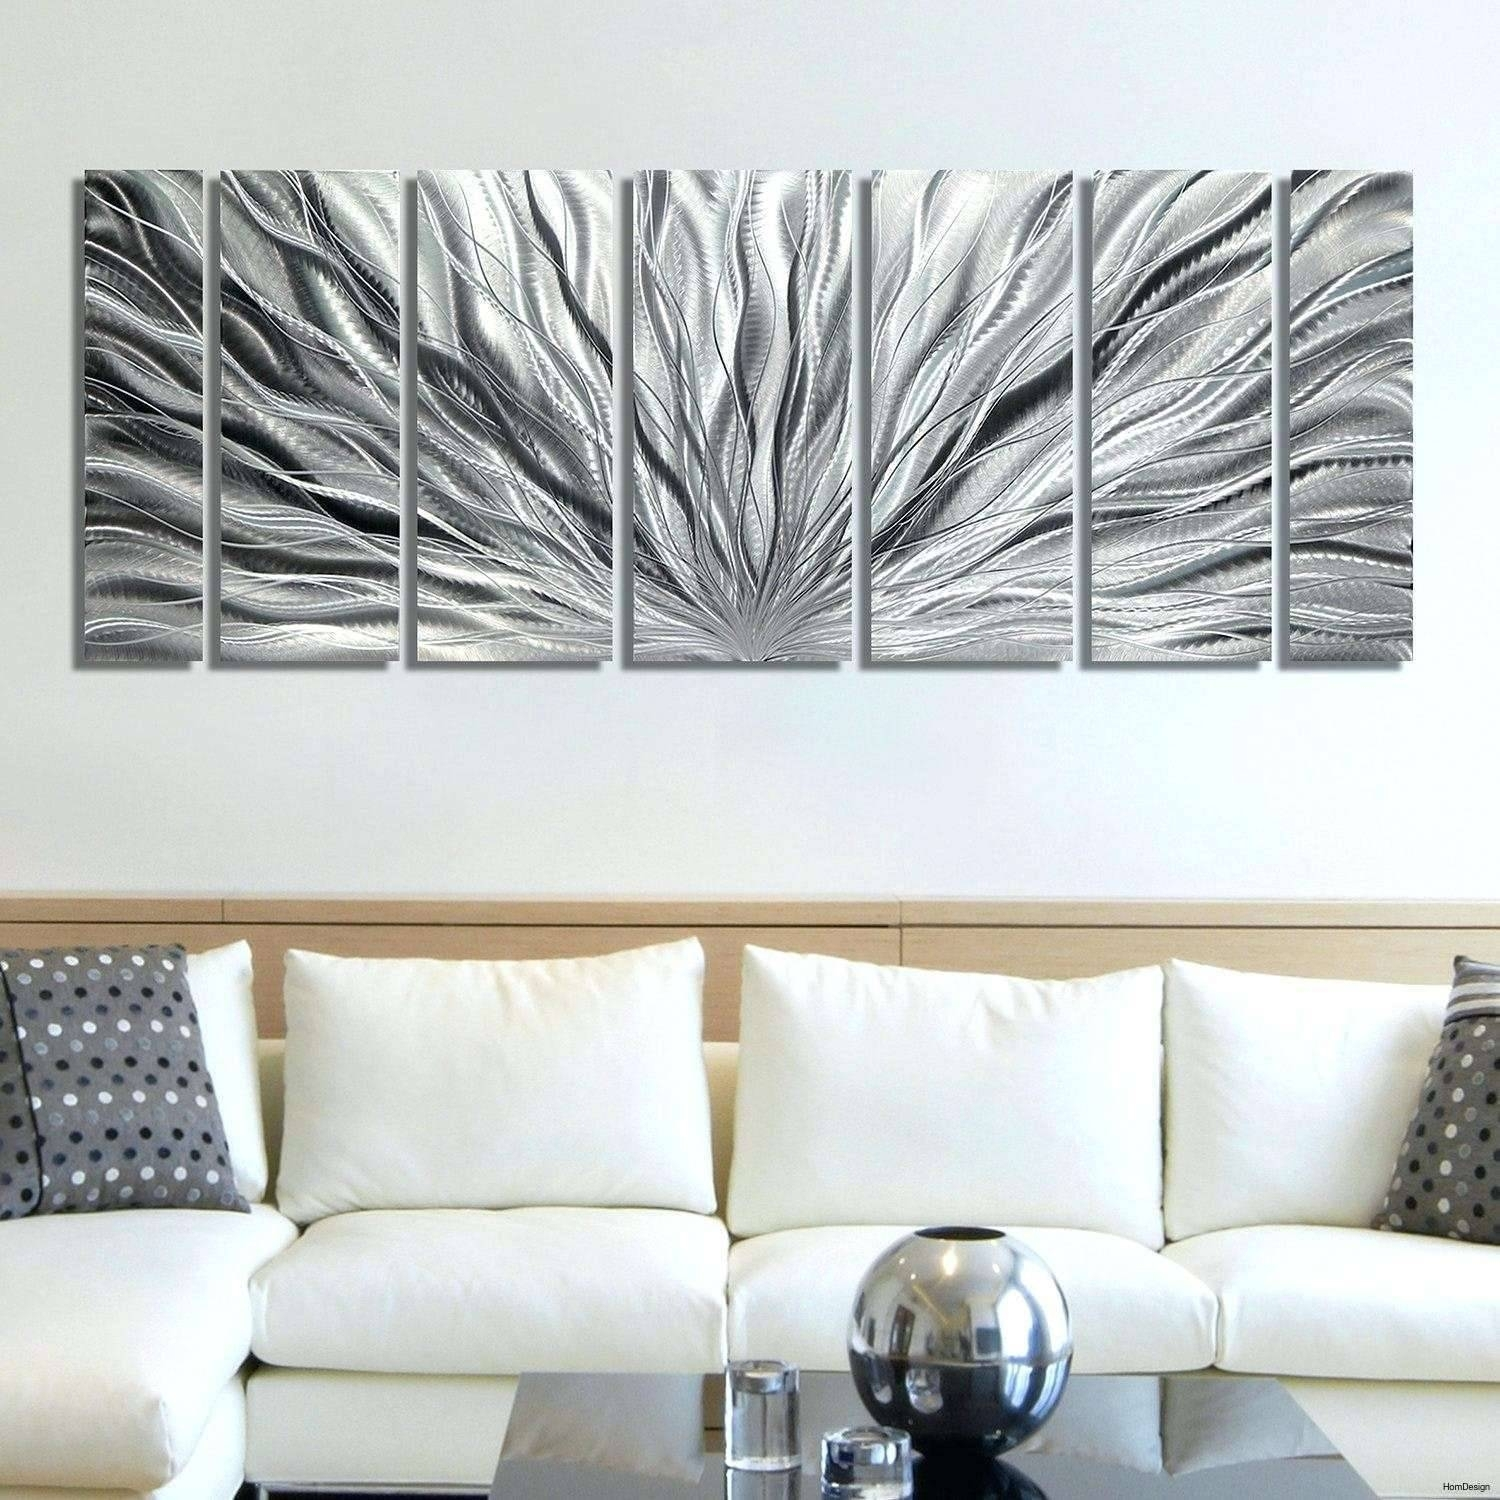 60 Awesome Framed Wall Art For Living Room | Downtownerinmills For Framed Wall Art For Living Room (Photo 12 of 20)